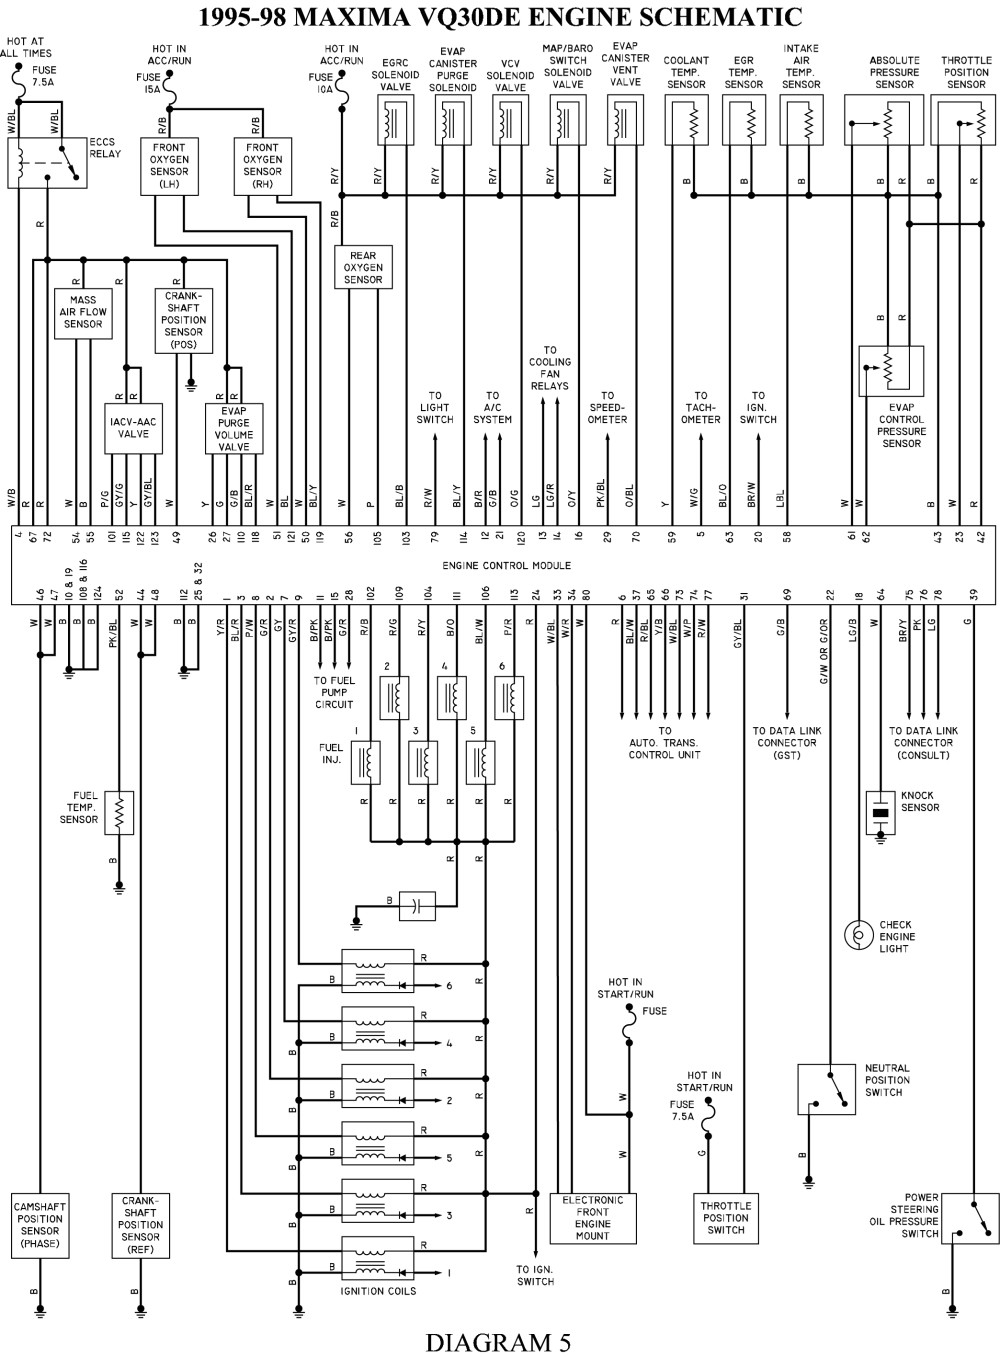 1998 nissan altima wiring diagram Download-1997 Nissan Altima Wiring Diagram Gallery 11-m